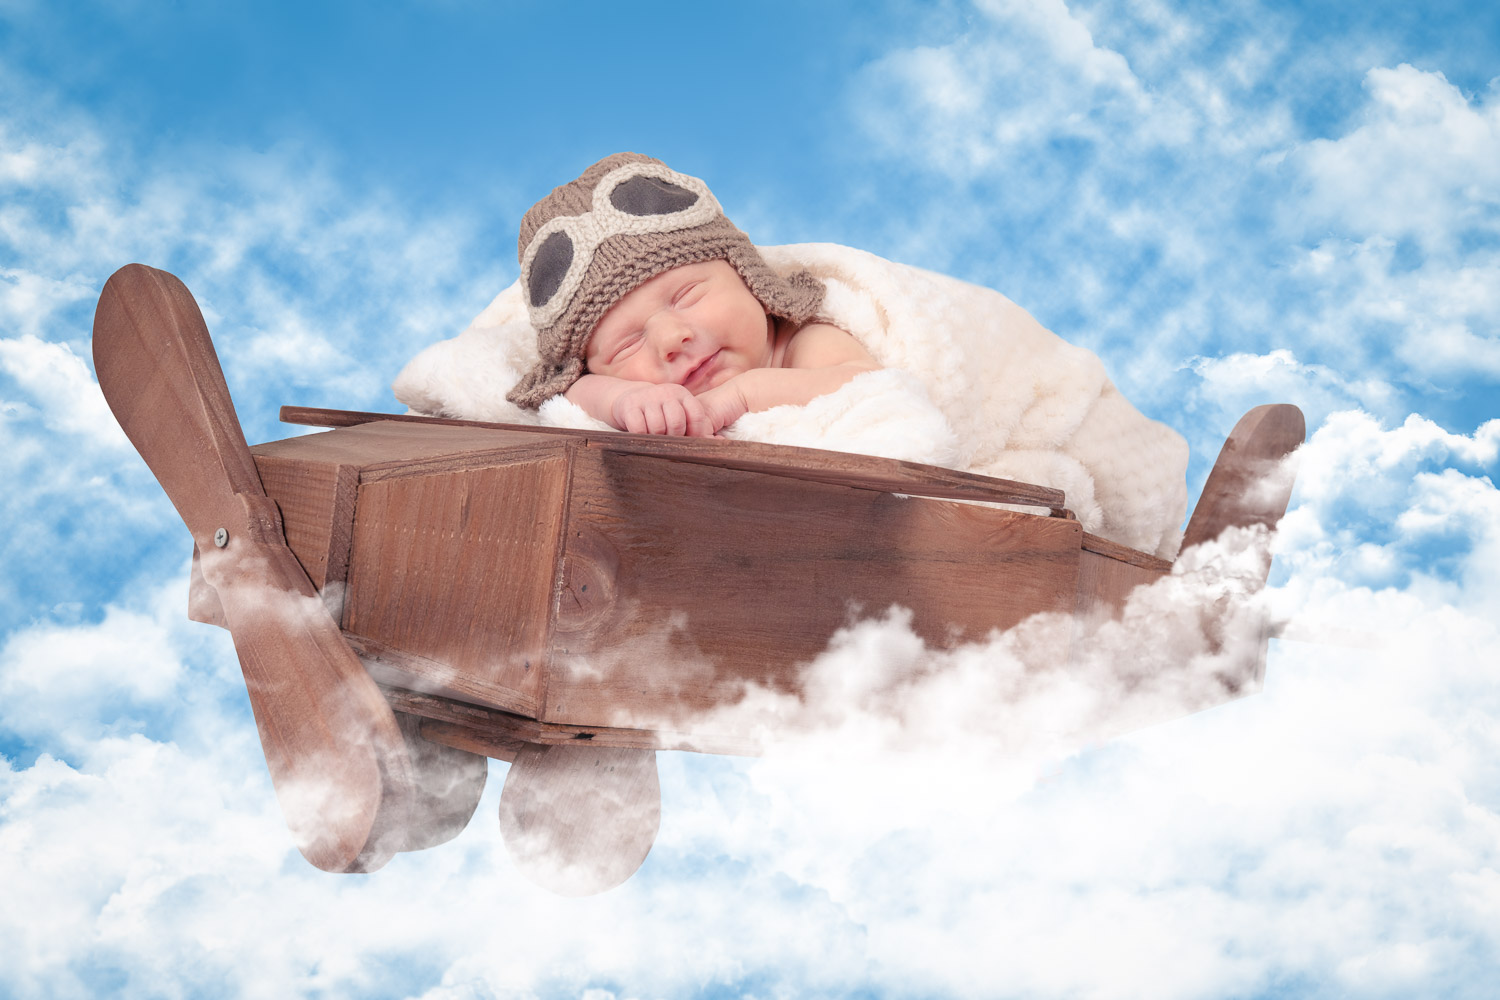 Newborn sleeping in a model aeroplane with pilot hat. Creatively flying in the sky.